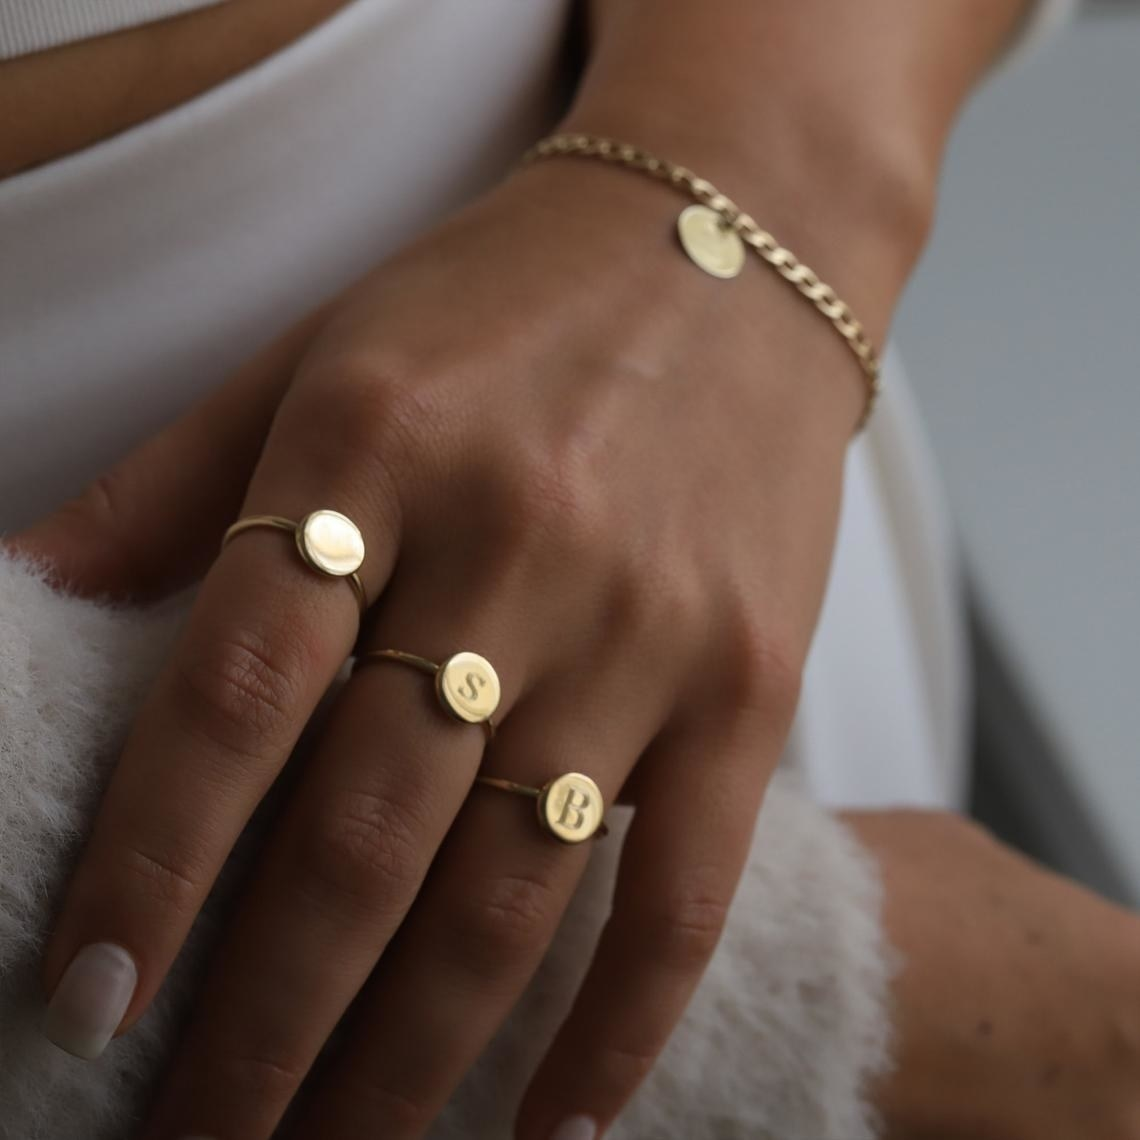 A person wearing three rings, two of which have letters on them